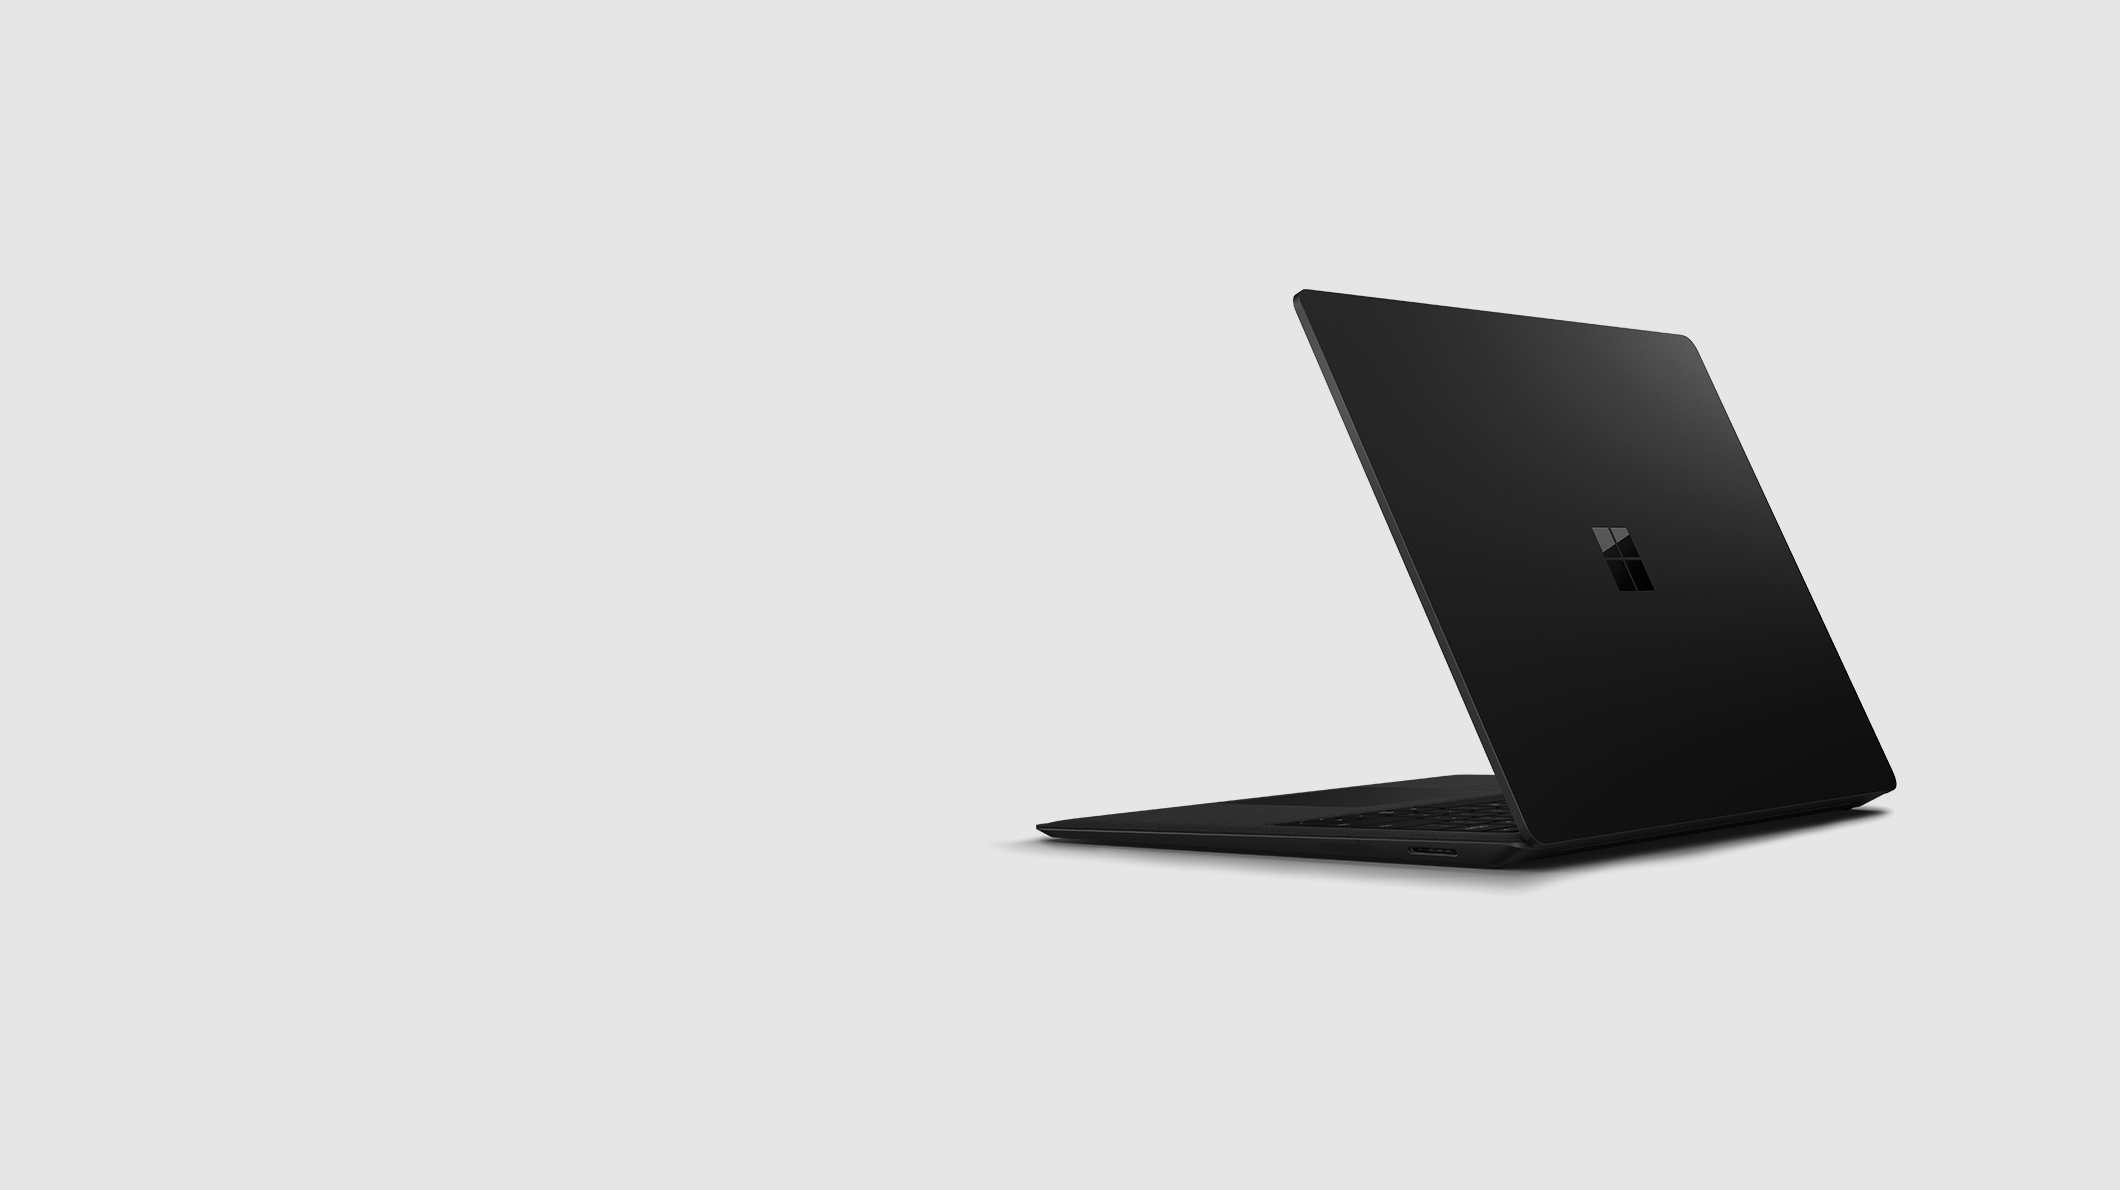 The back side of the black Surface Laptop 2